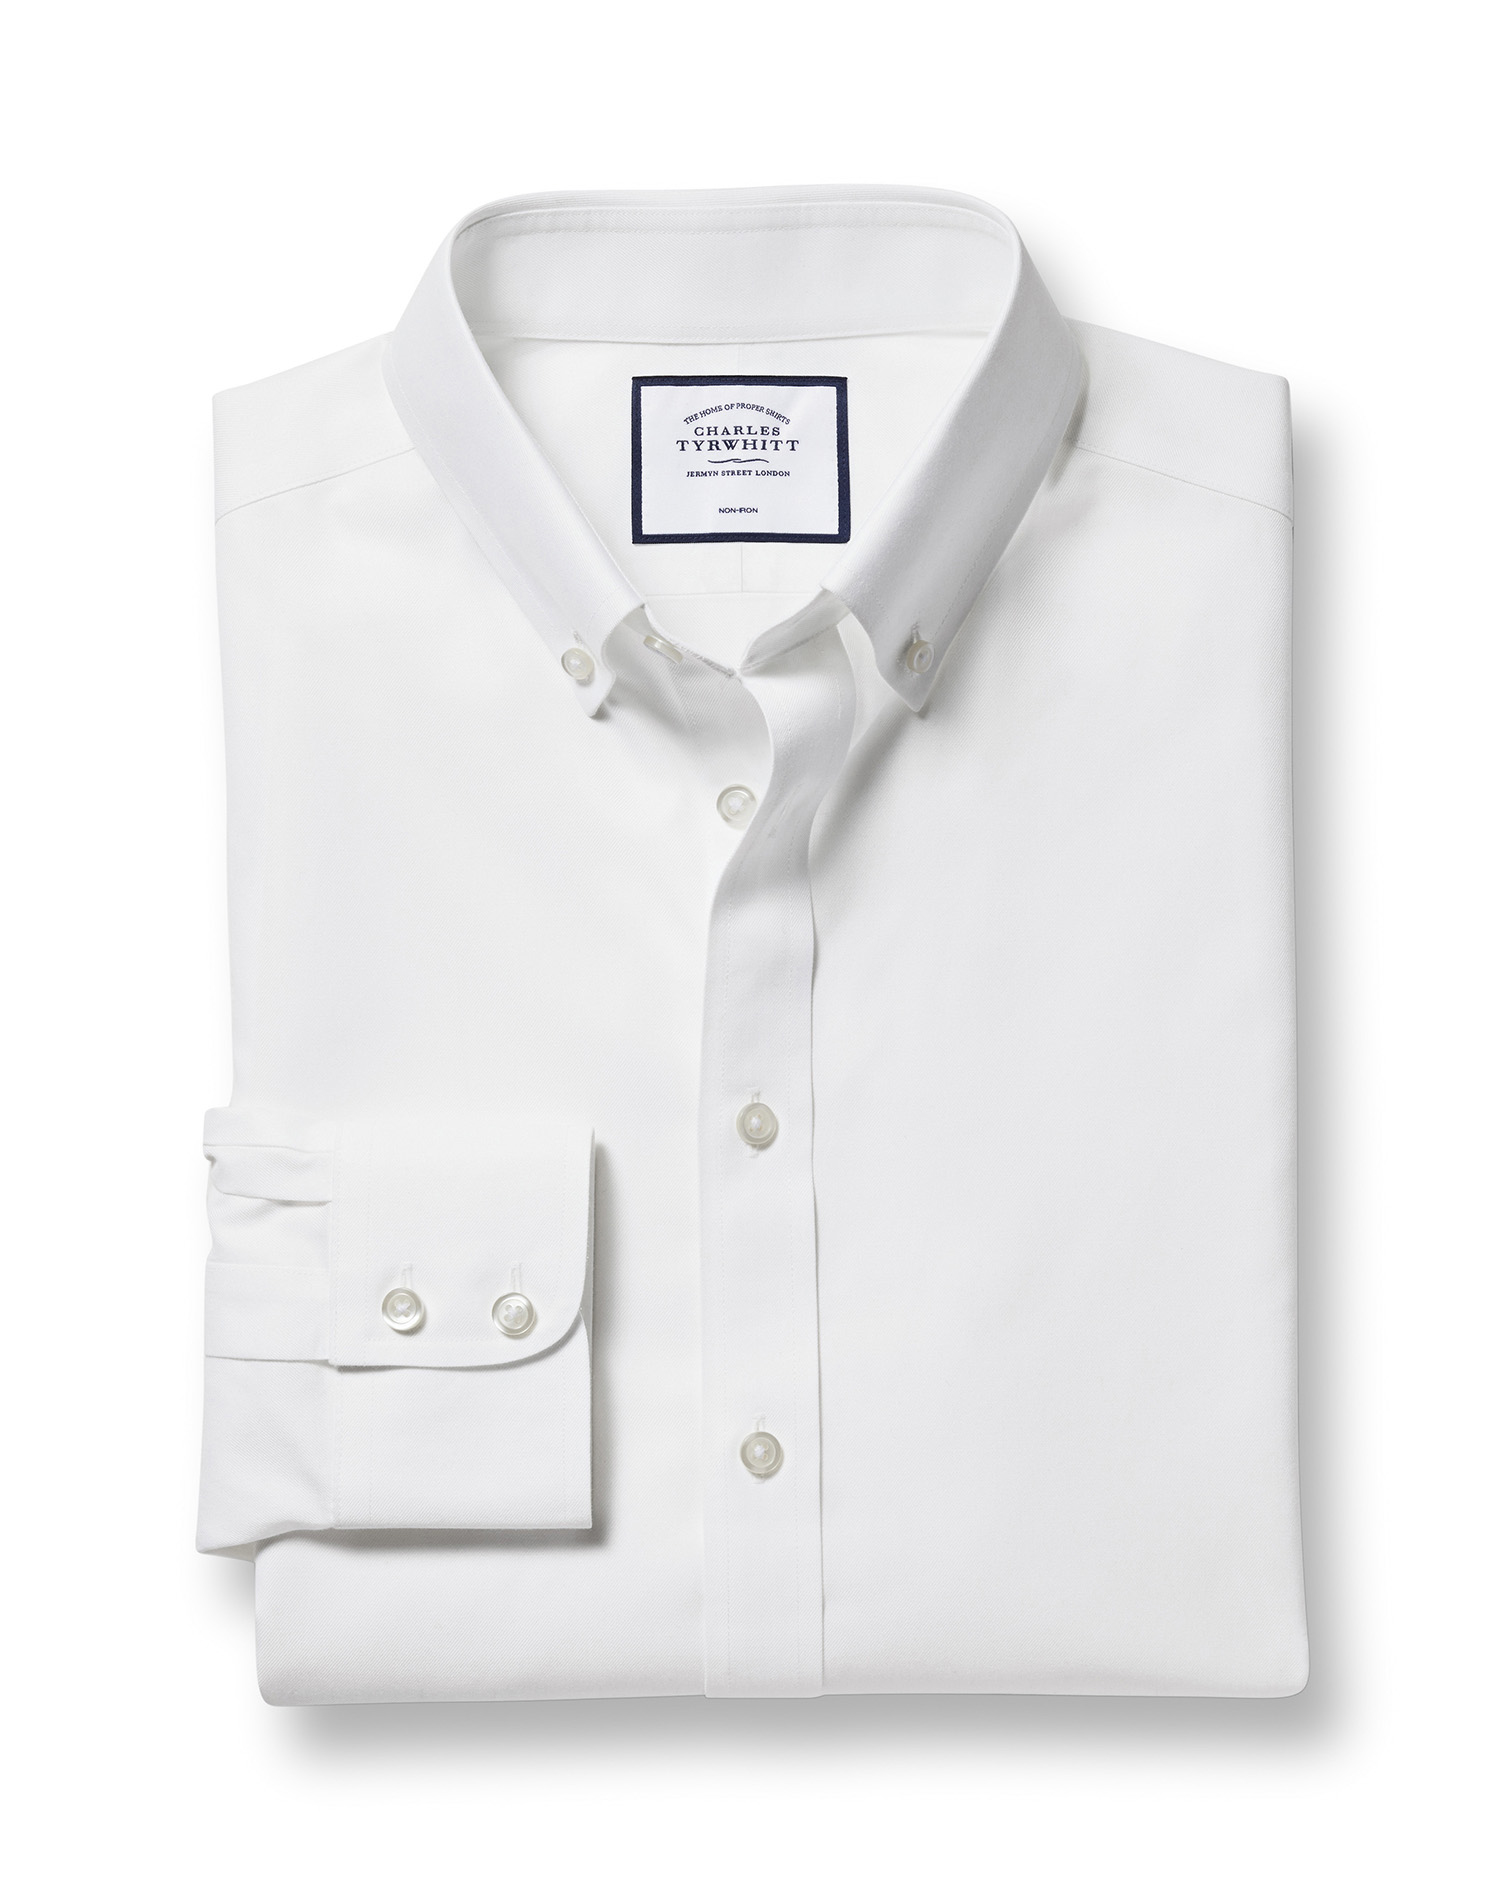 Classic Fit Button-Down Non-Iron Twill White Cotton Formal Shirt Single Cuff Size 17/38 by Charles T